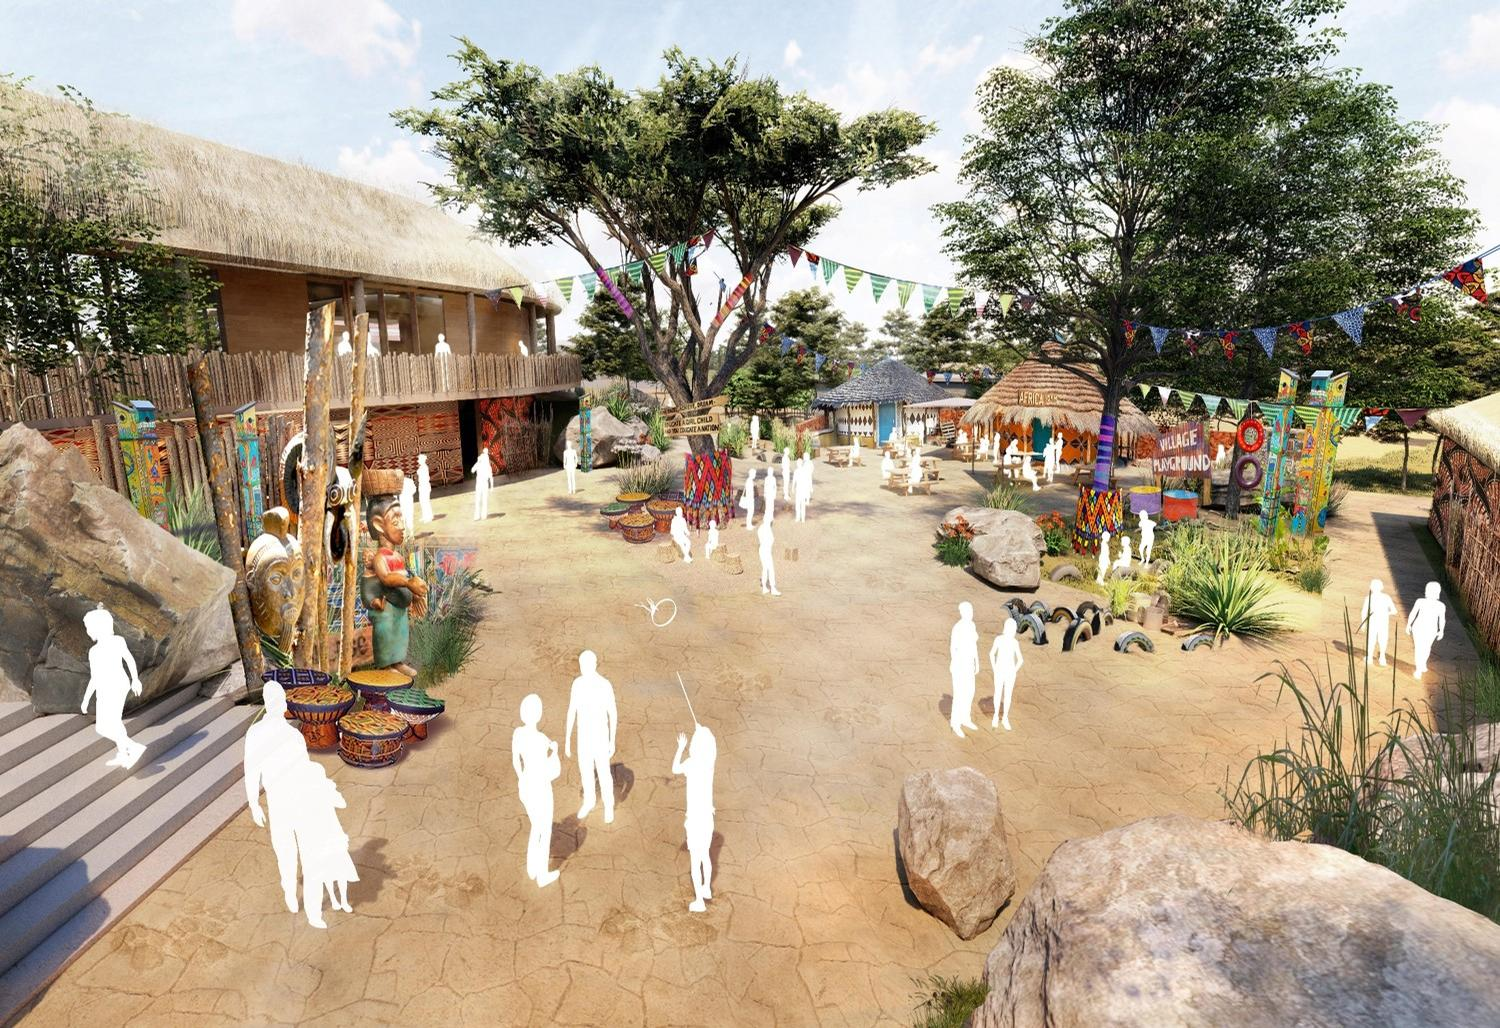 The zoo has submitted plans for the new area, called Grasslands, whose centrepiece attraction will be a large, open African savannah habitat / Chester Zoo